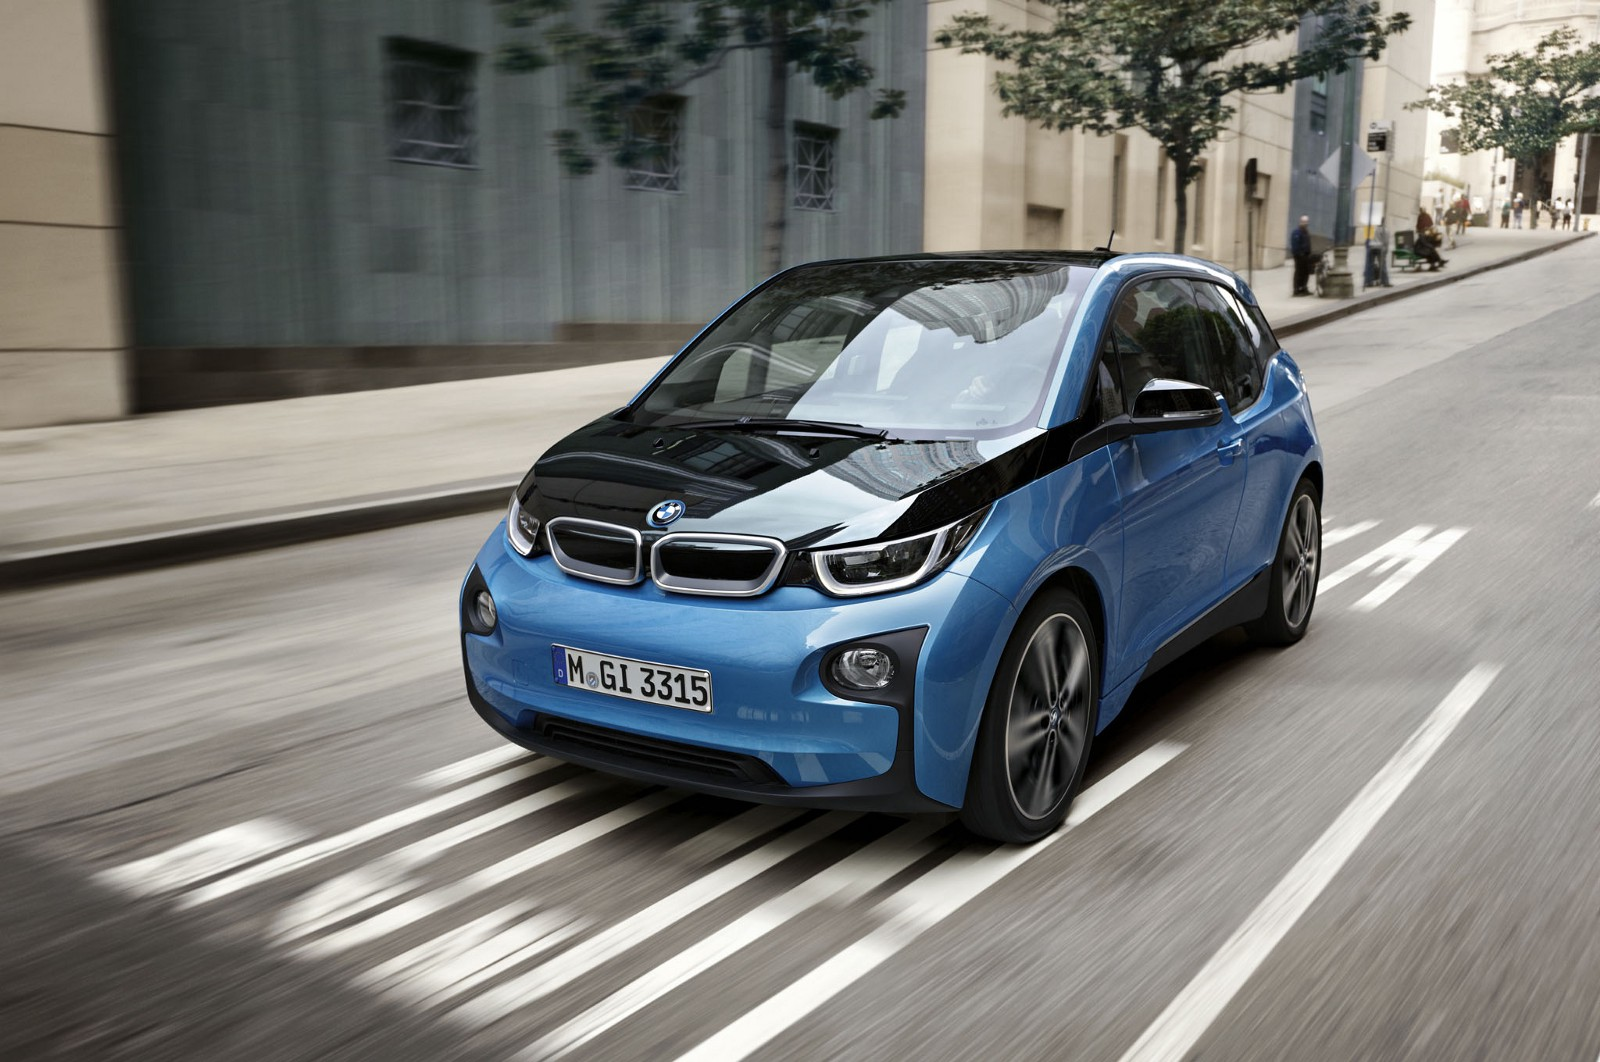 In November 2017 I Decided To Take The Plunge And Lease A Bmw I3 With Rex From Screekbmw Santa Clara Ca First Week Was Exhilarating